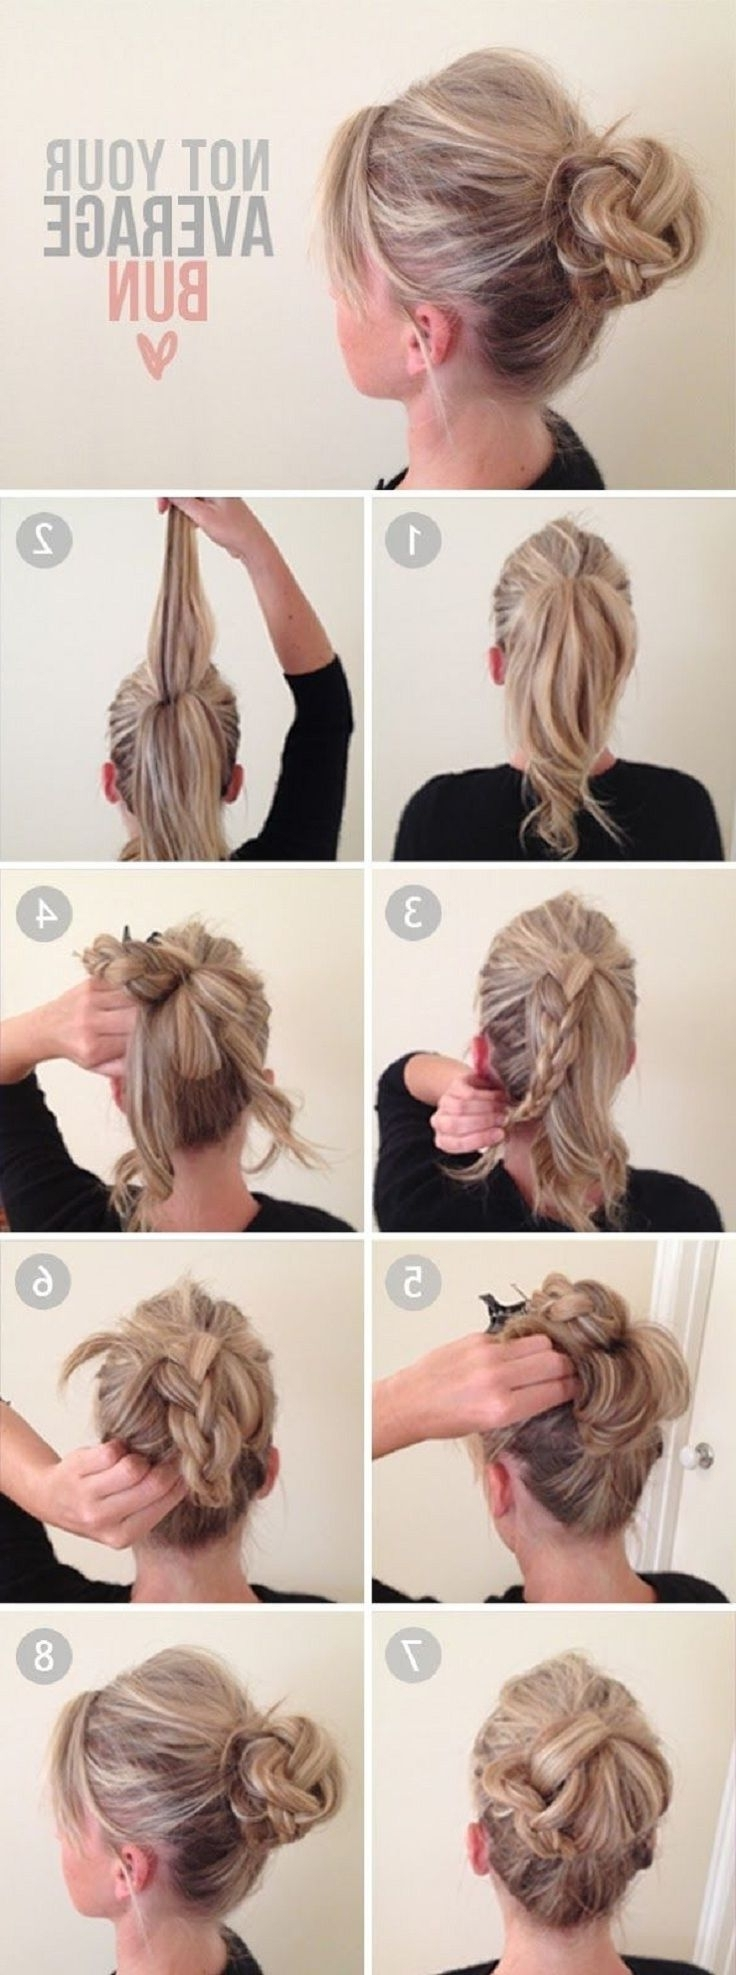 Trendy Double Braided Wrap Around Ponytail Hairstyles Throughout 14 Amazing Double Braid Bun Hairstyles – Pretty Designs (Gallery 11 of 20)